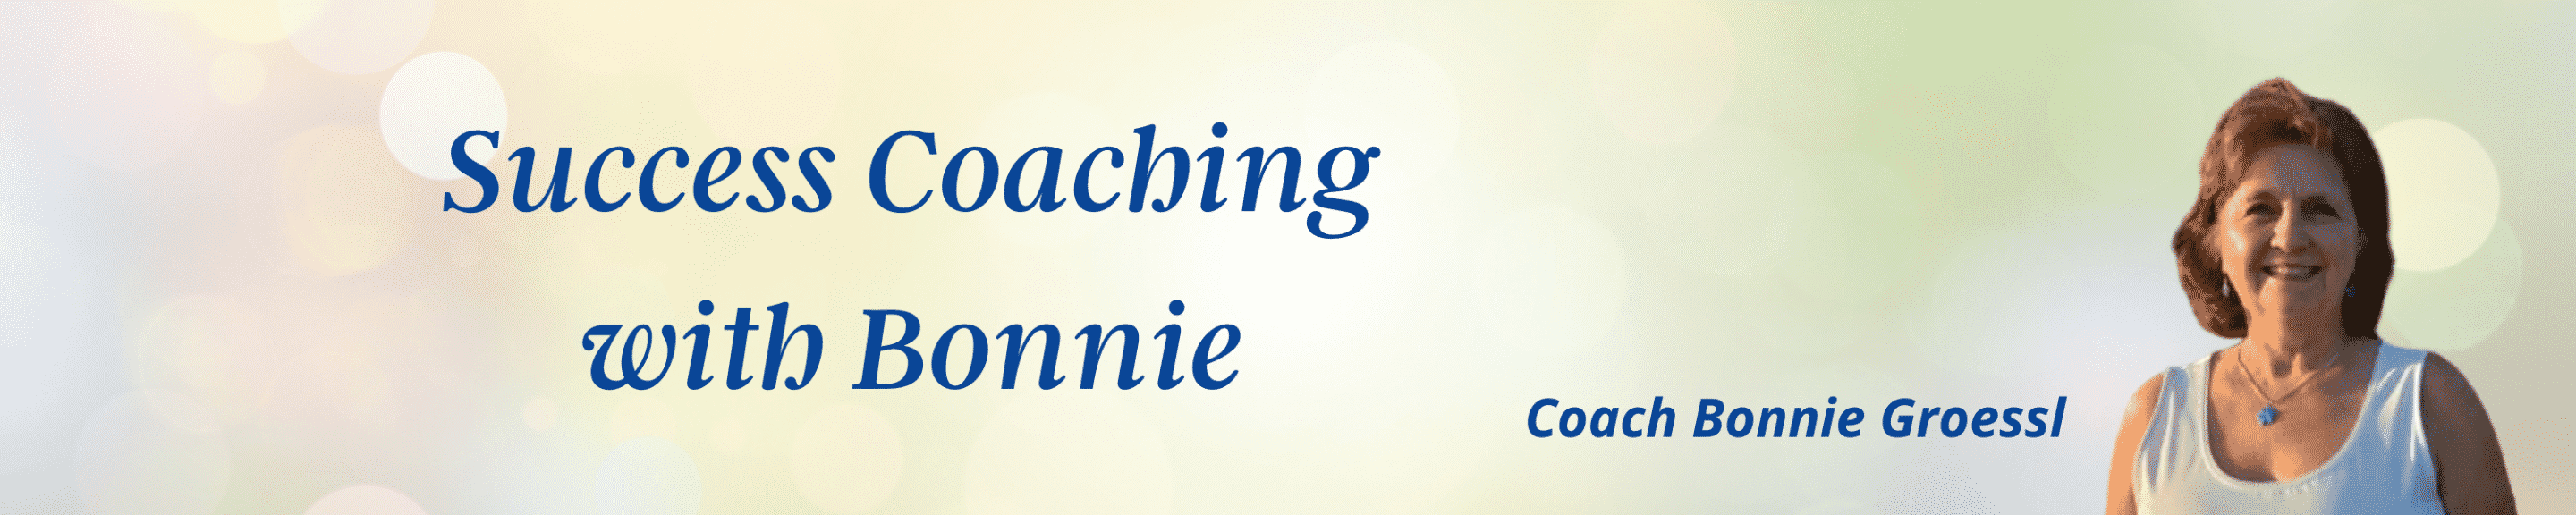 Success Coaching with Bonnie Groessl